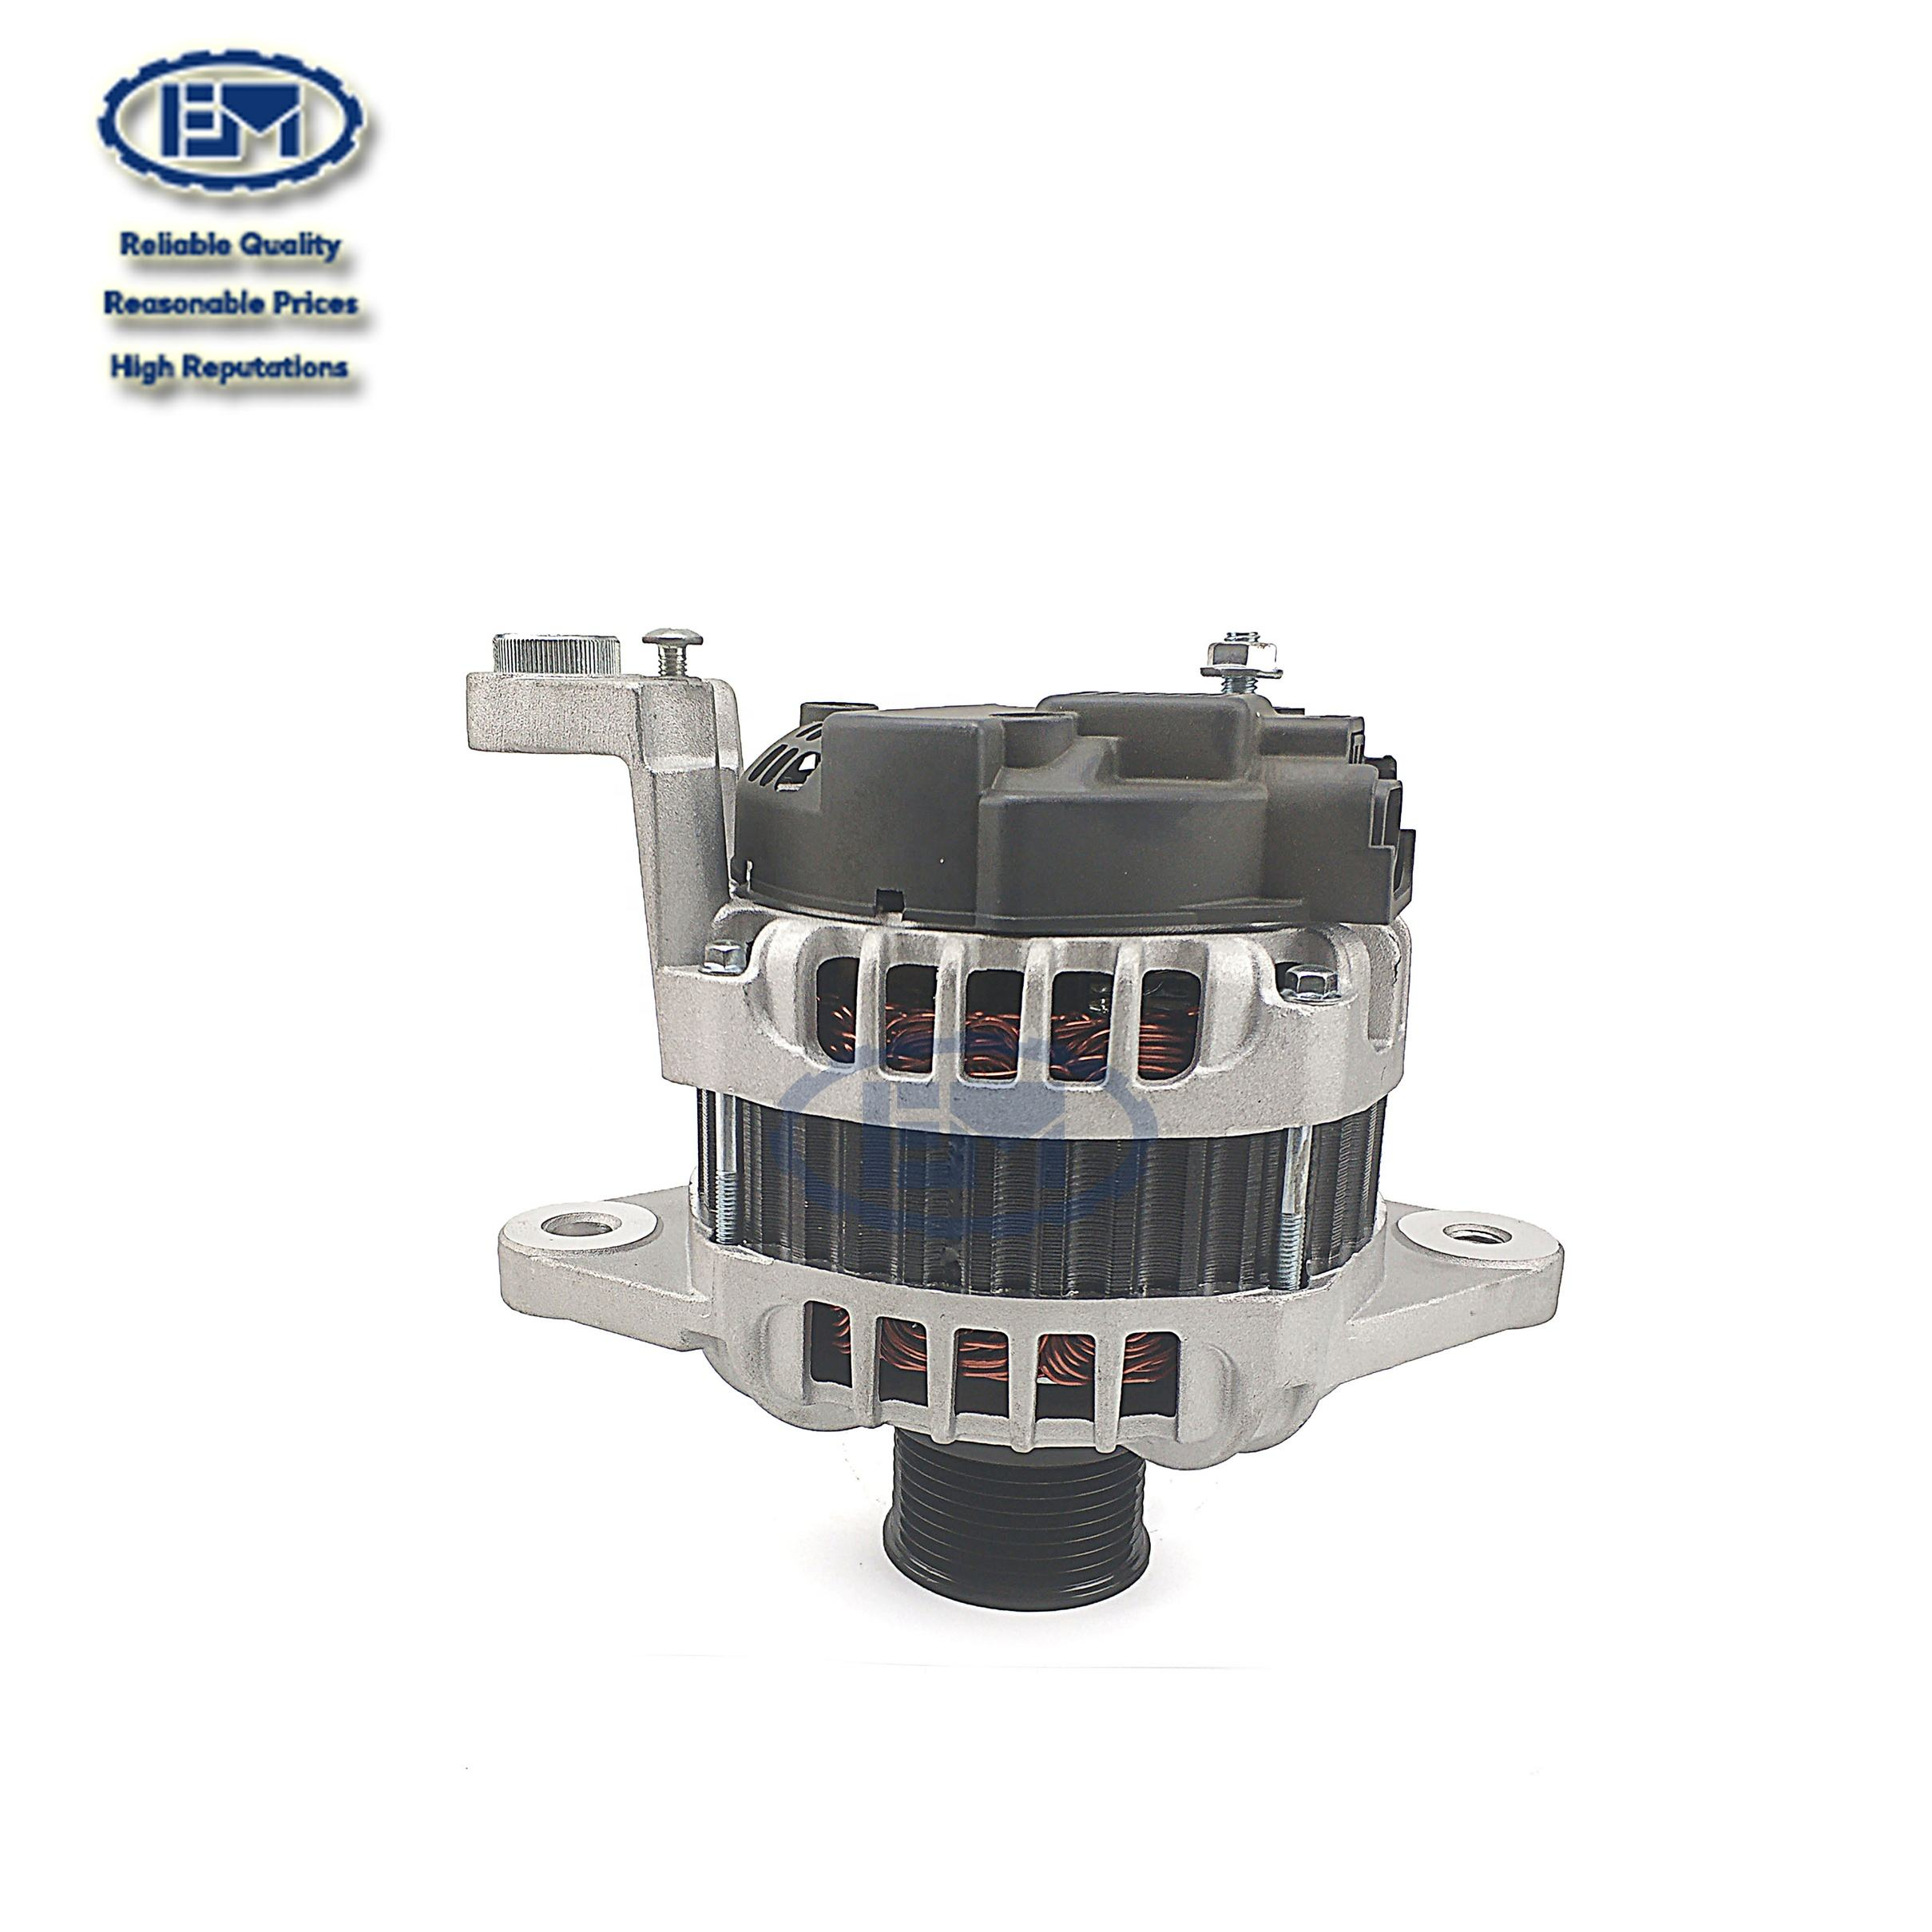 High-quality Alternator EM3730048000 for R455-7 R505 Excavator Genuine Parts EM